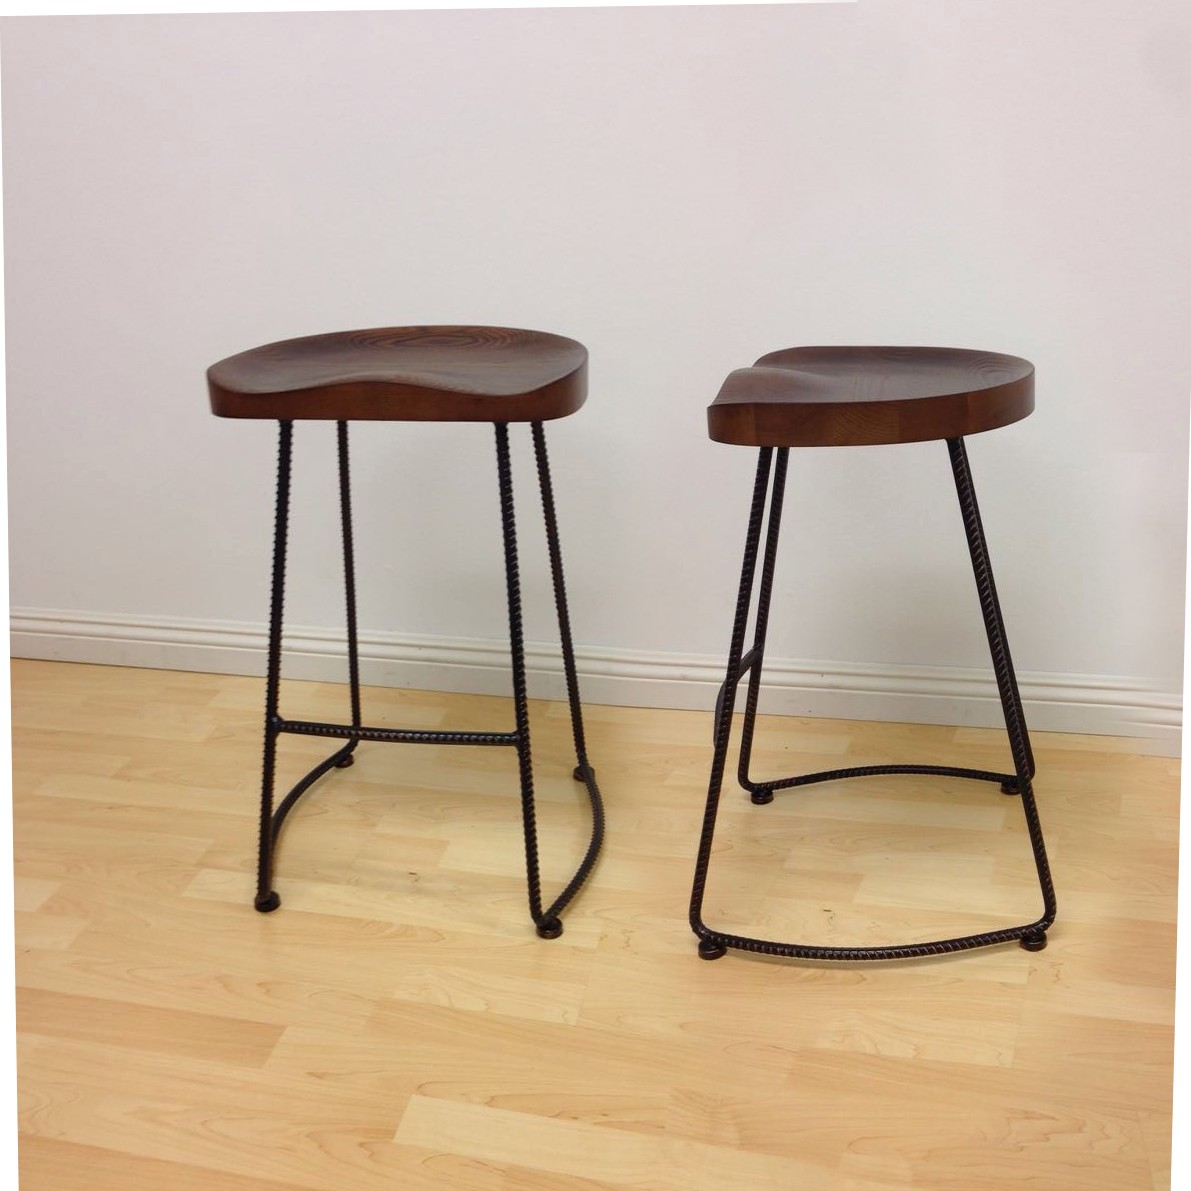 Potter Wood Counter Stool Metal Leg 2 Pack : doubleimages from www.modmade.com size 1191 x 1191 jpeg 162kB